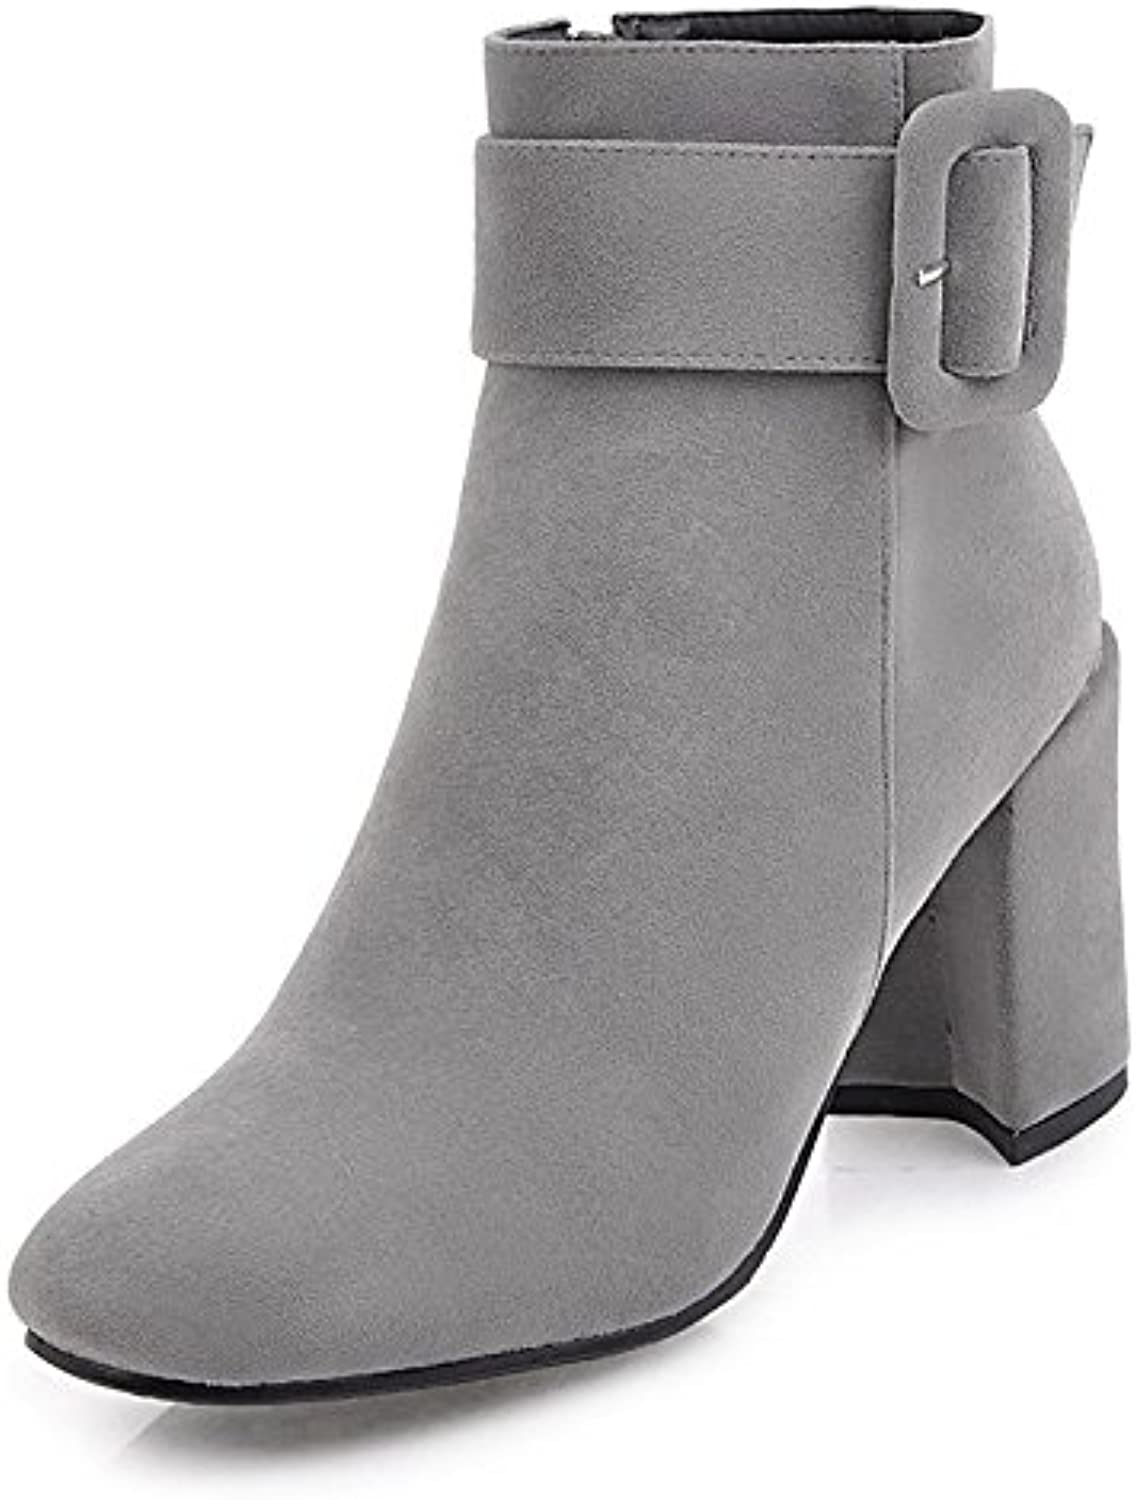 HSXZ Women's shoes Fleece Winter Fall Fashion Boots Bootie Boots Null Chunky Heel Round Toe Booties Ankle Boots MidCalf Boots Buckle for